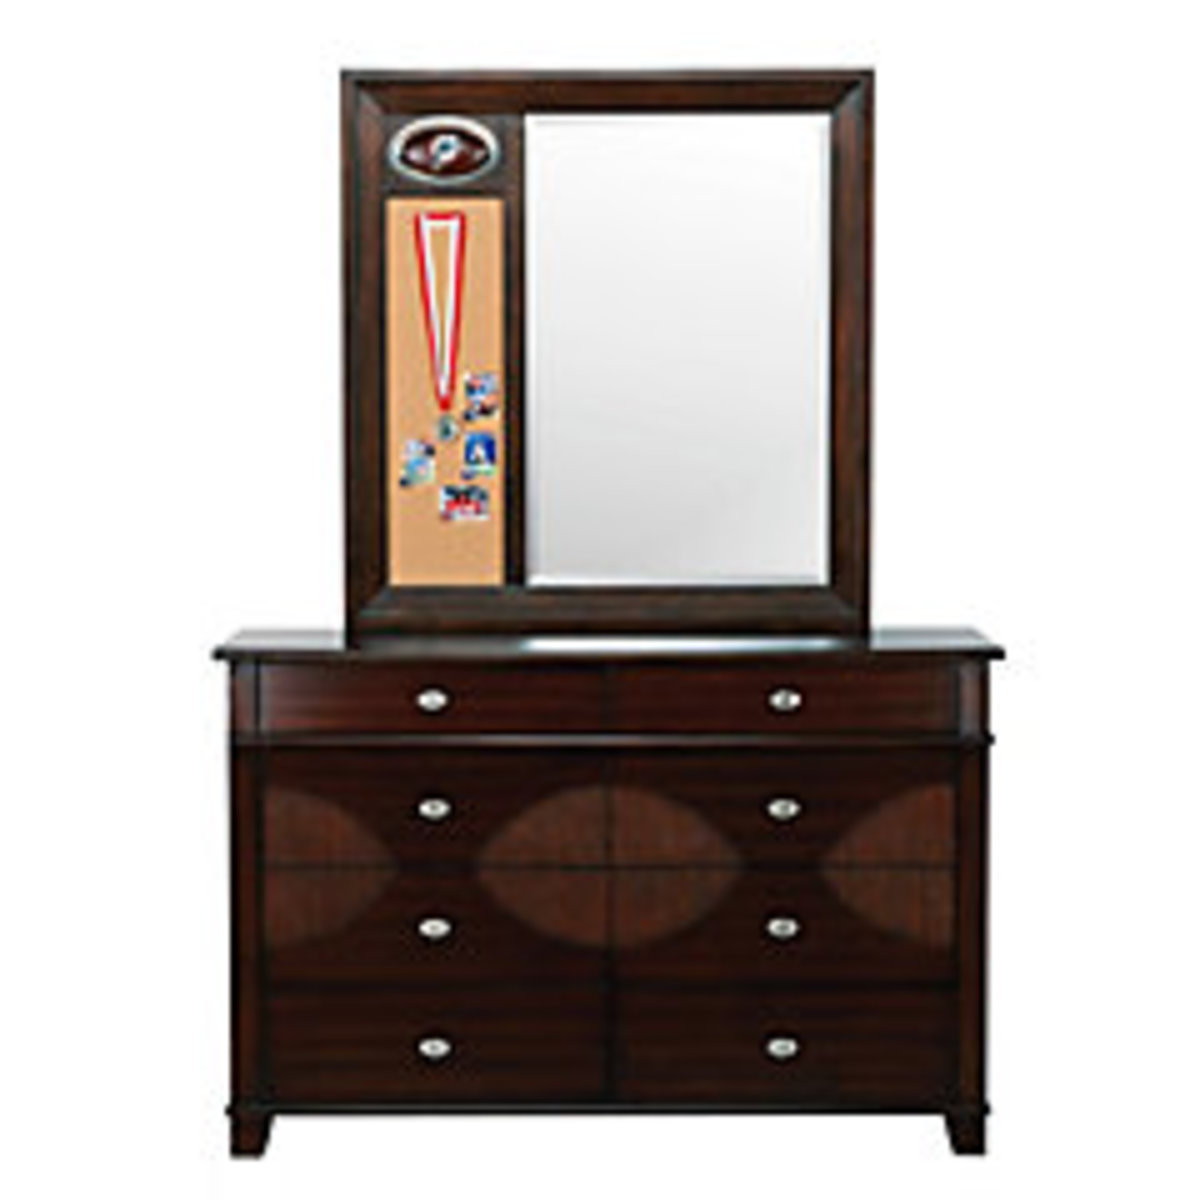 football themed dresser and matching mirror in dark classic wood with football team logo